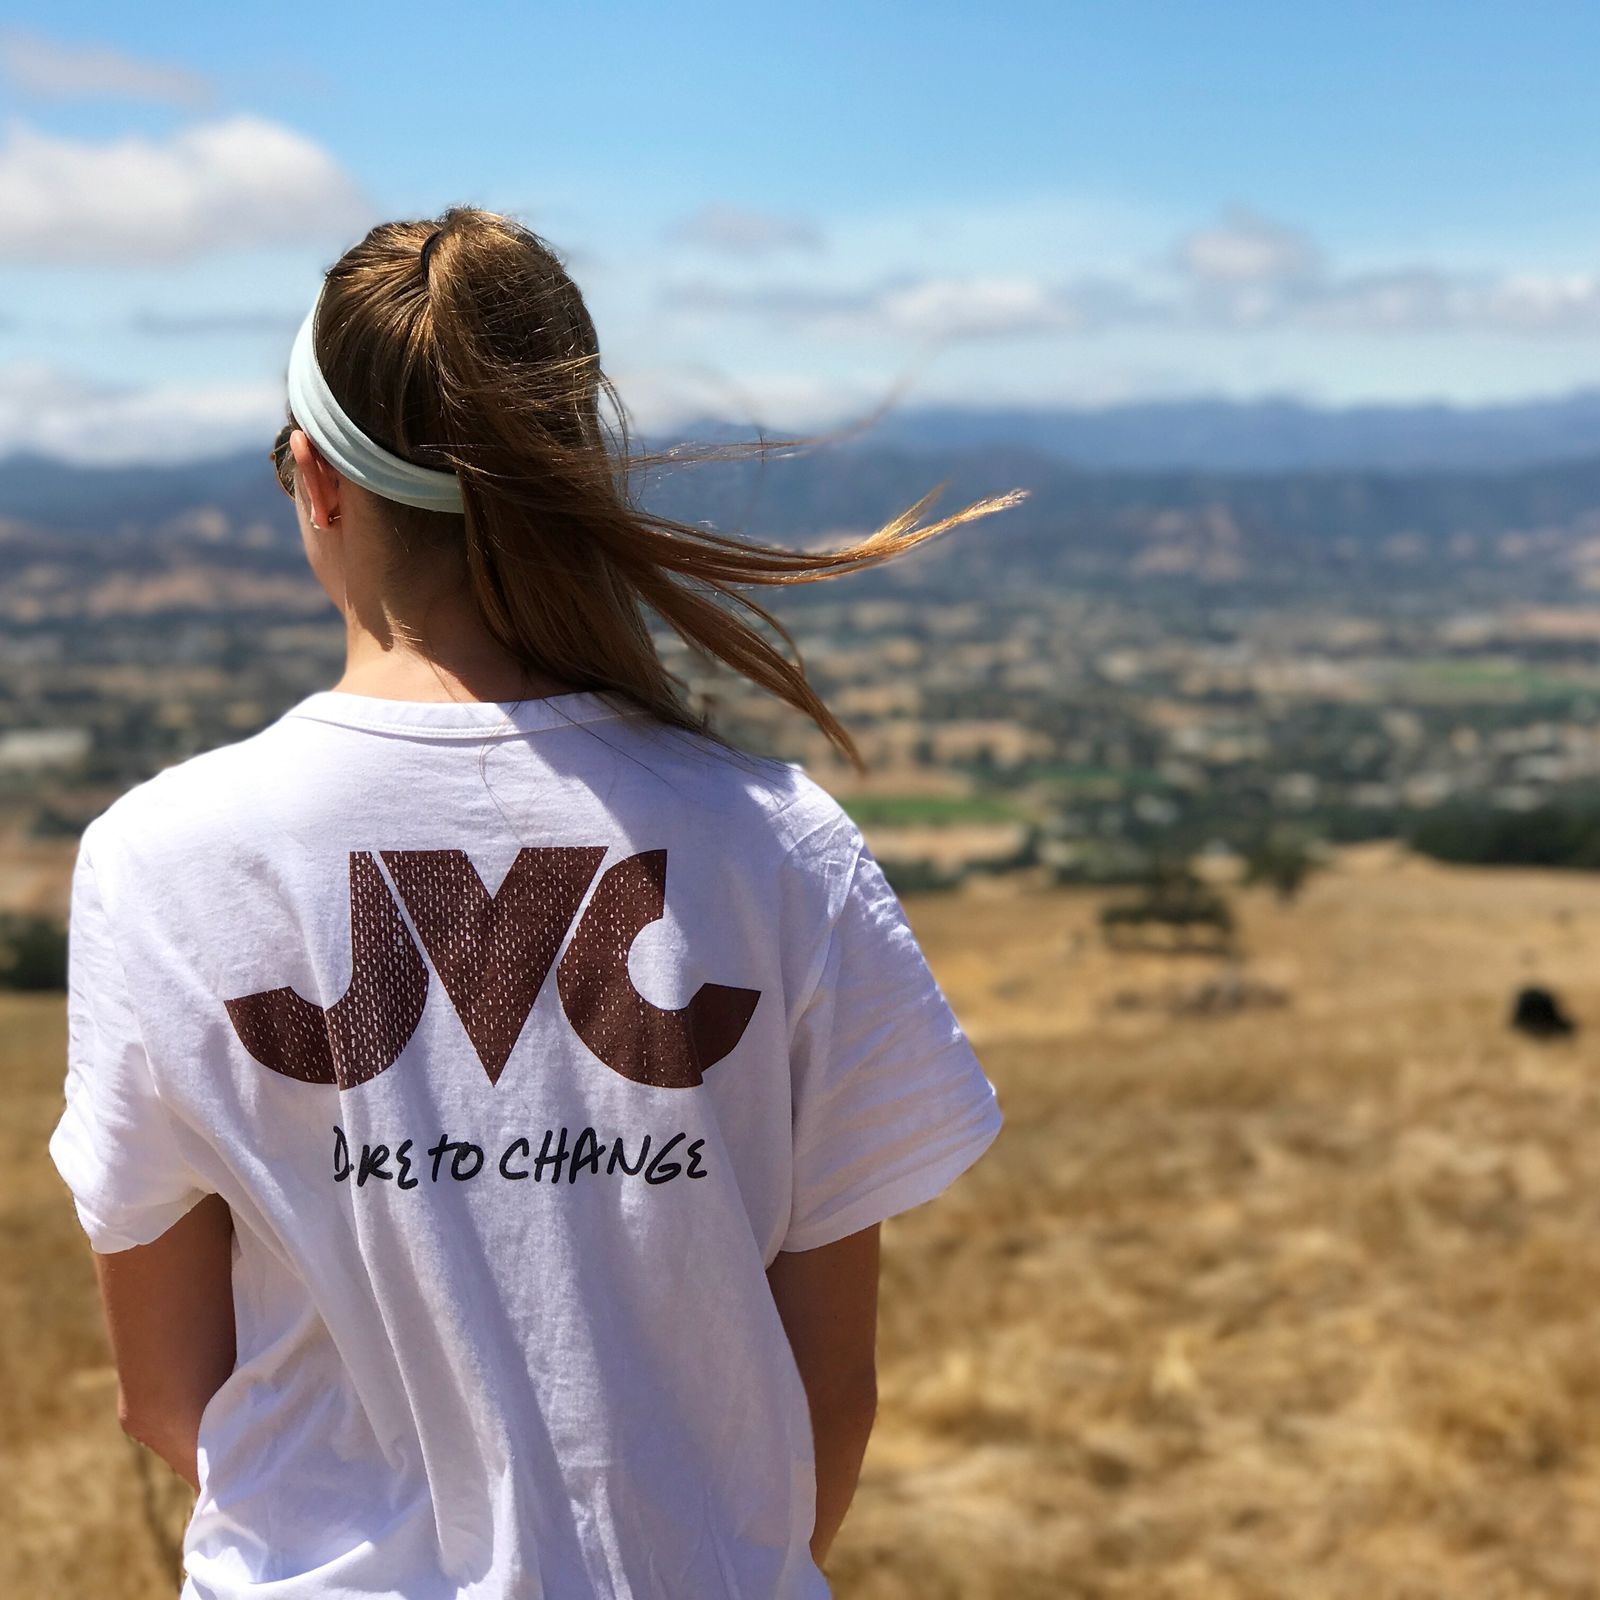 JVC Nation photo contest submission from Casa Pedro Arrupe in Santa Clara/San Jose 2017-18